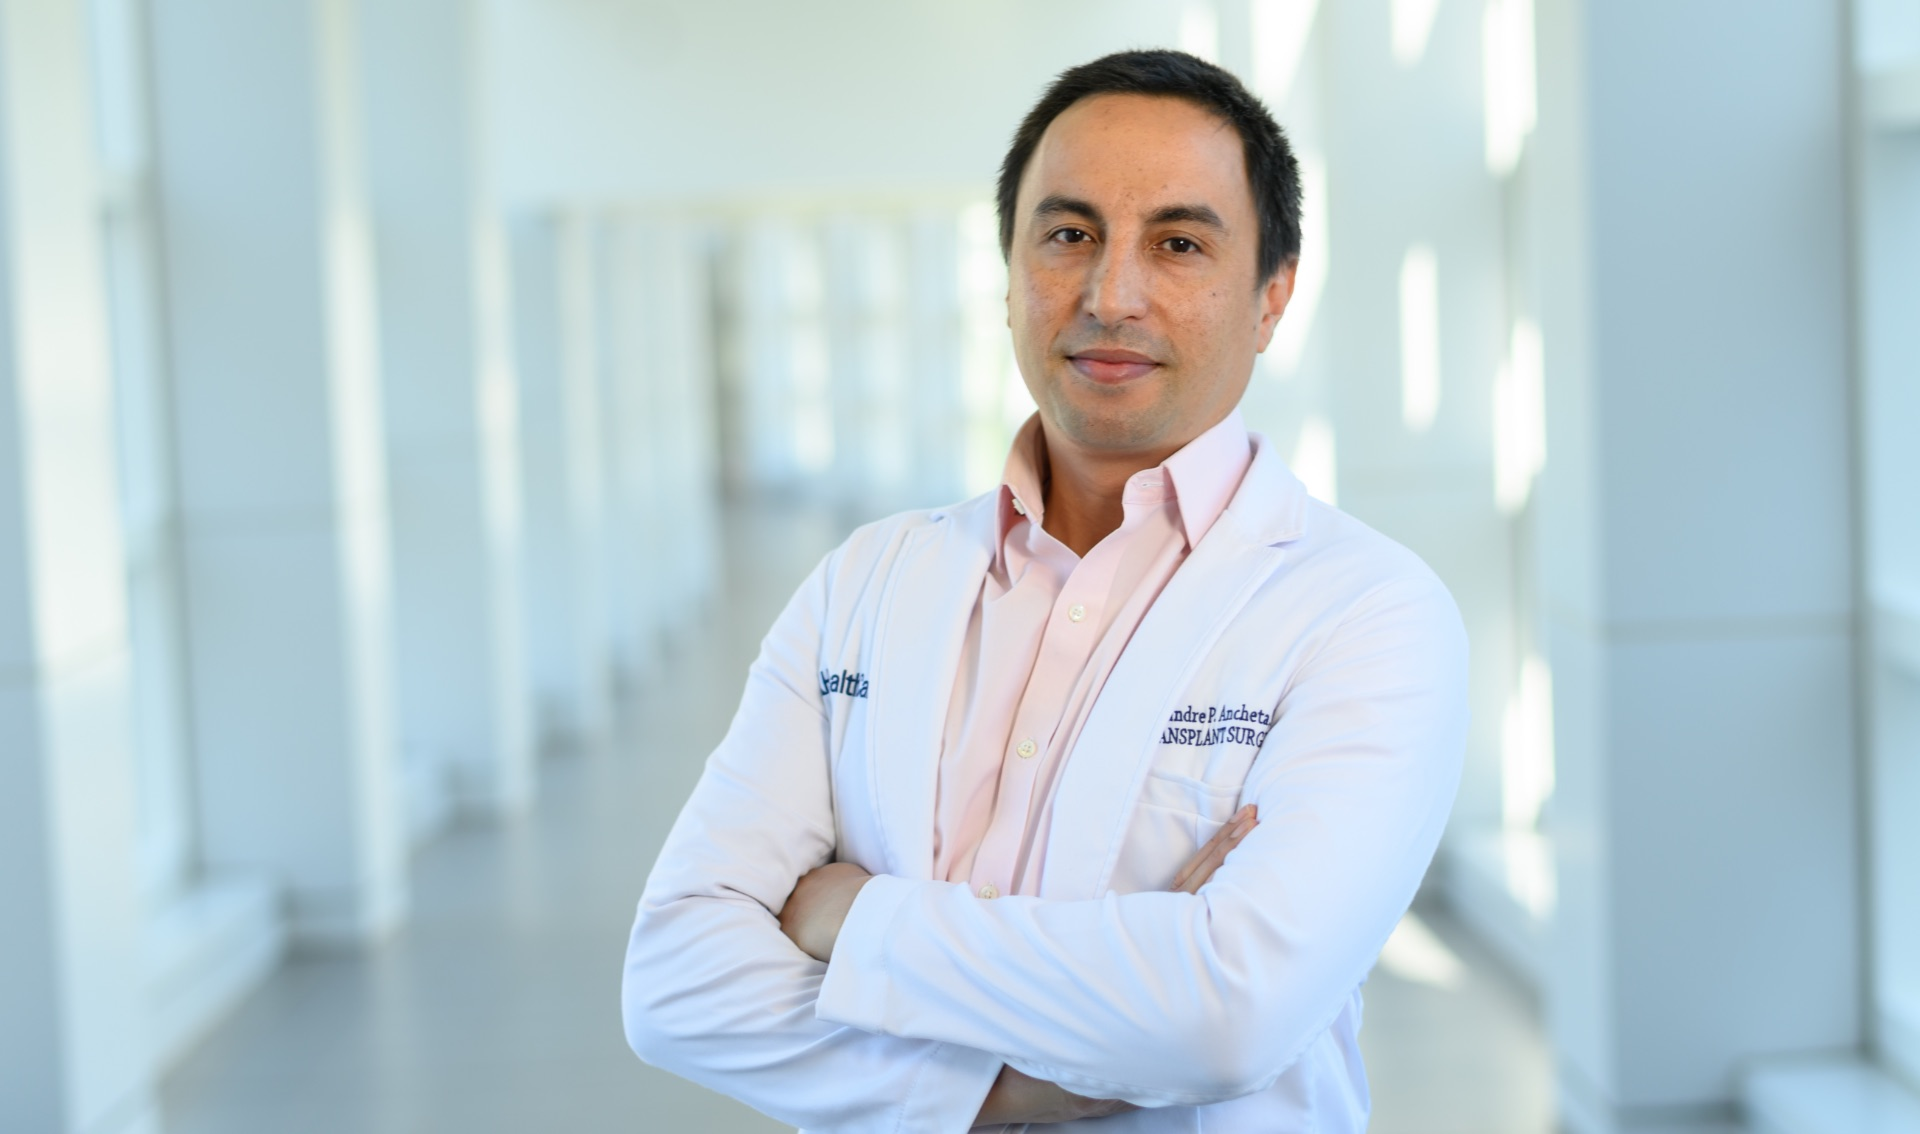 Dr. Alexandre Ancheta, a middle aged man with short black hair, stands in the hallway of UK HealthCare, wearing a white doctor's coat and a pink shirt.